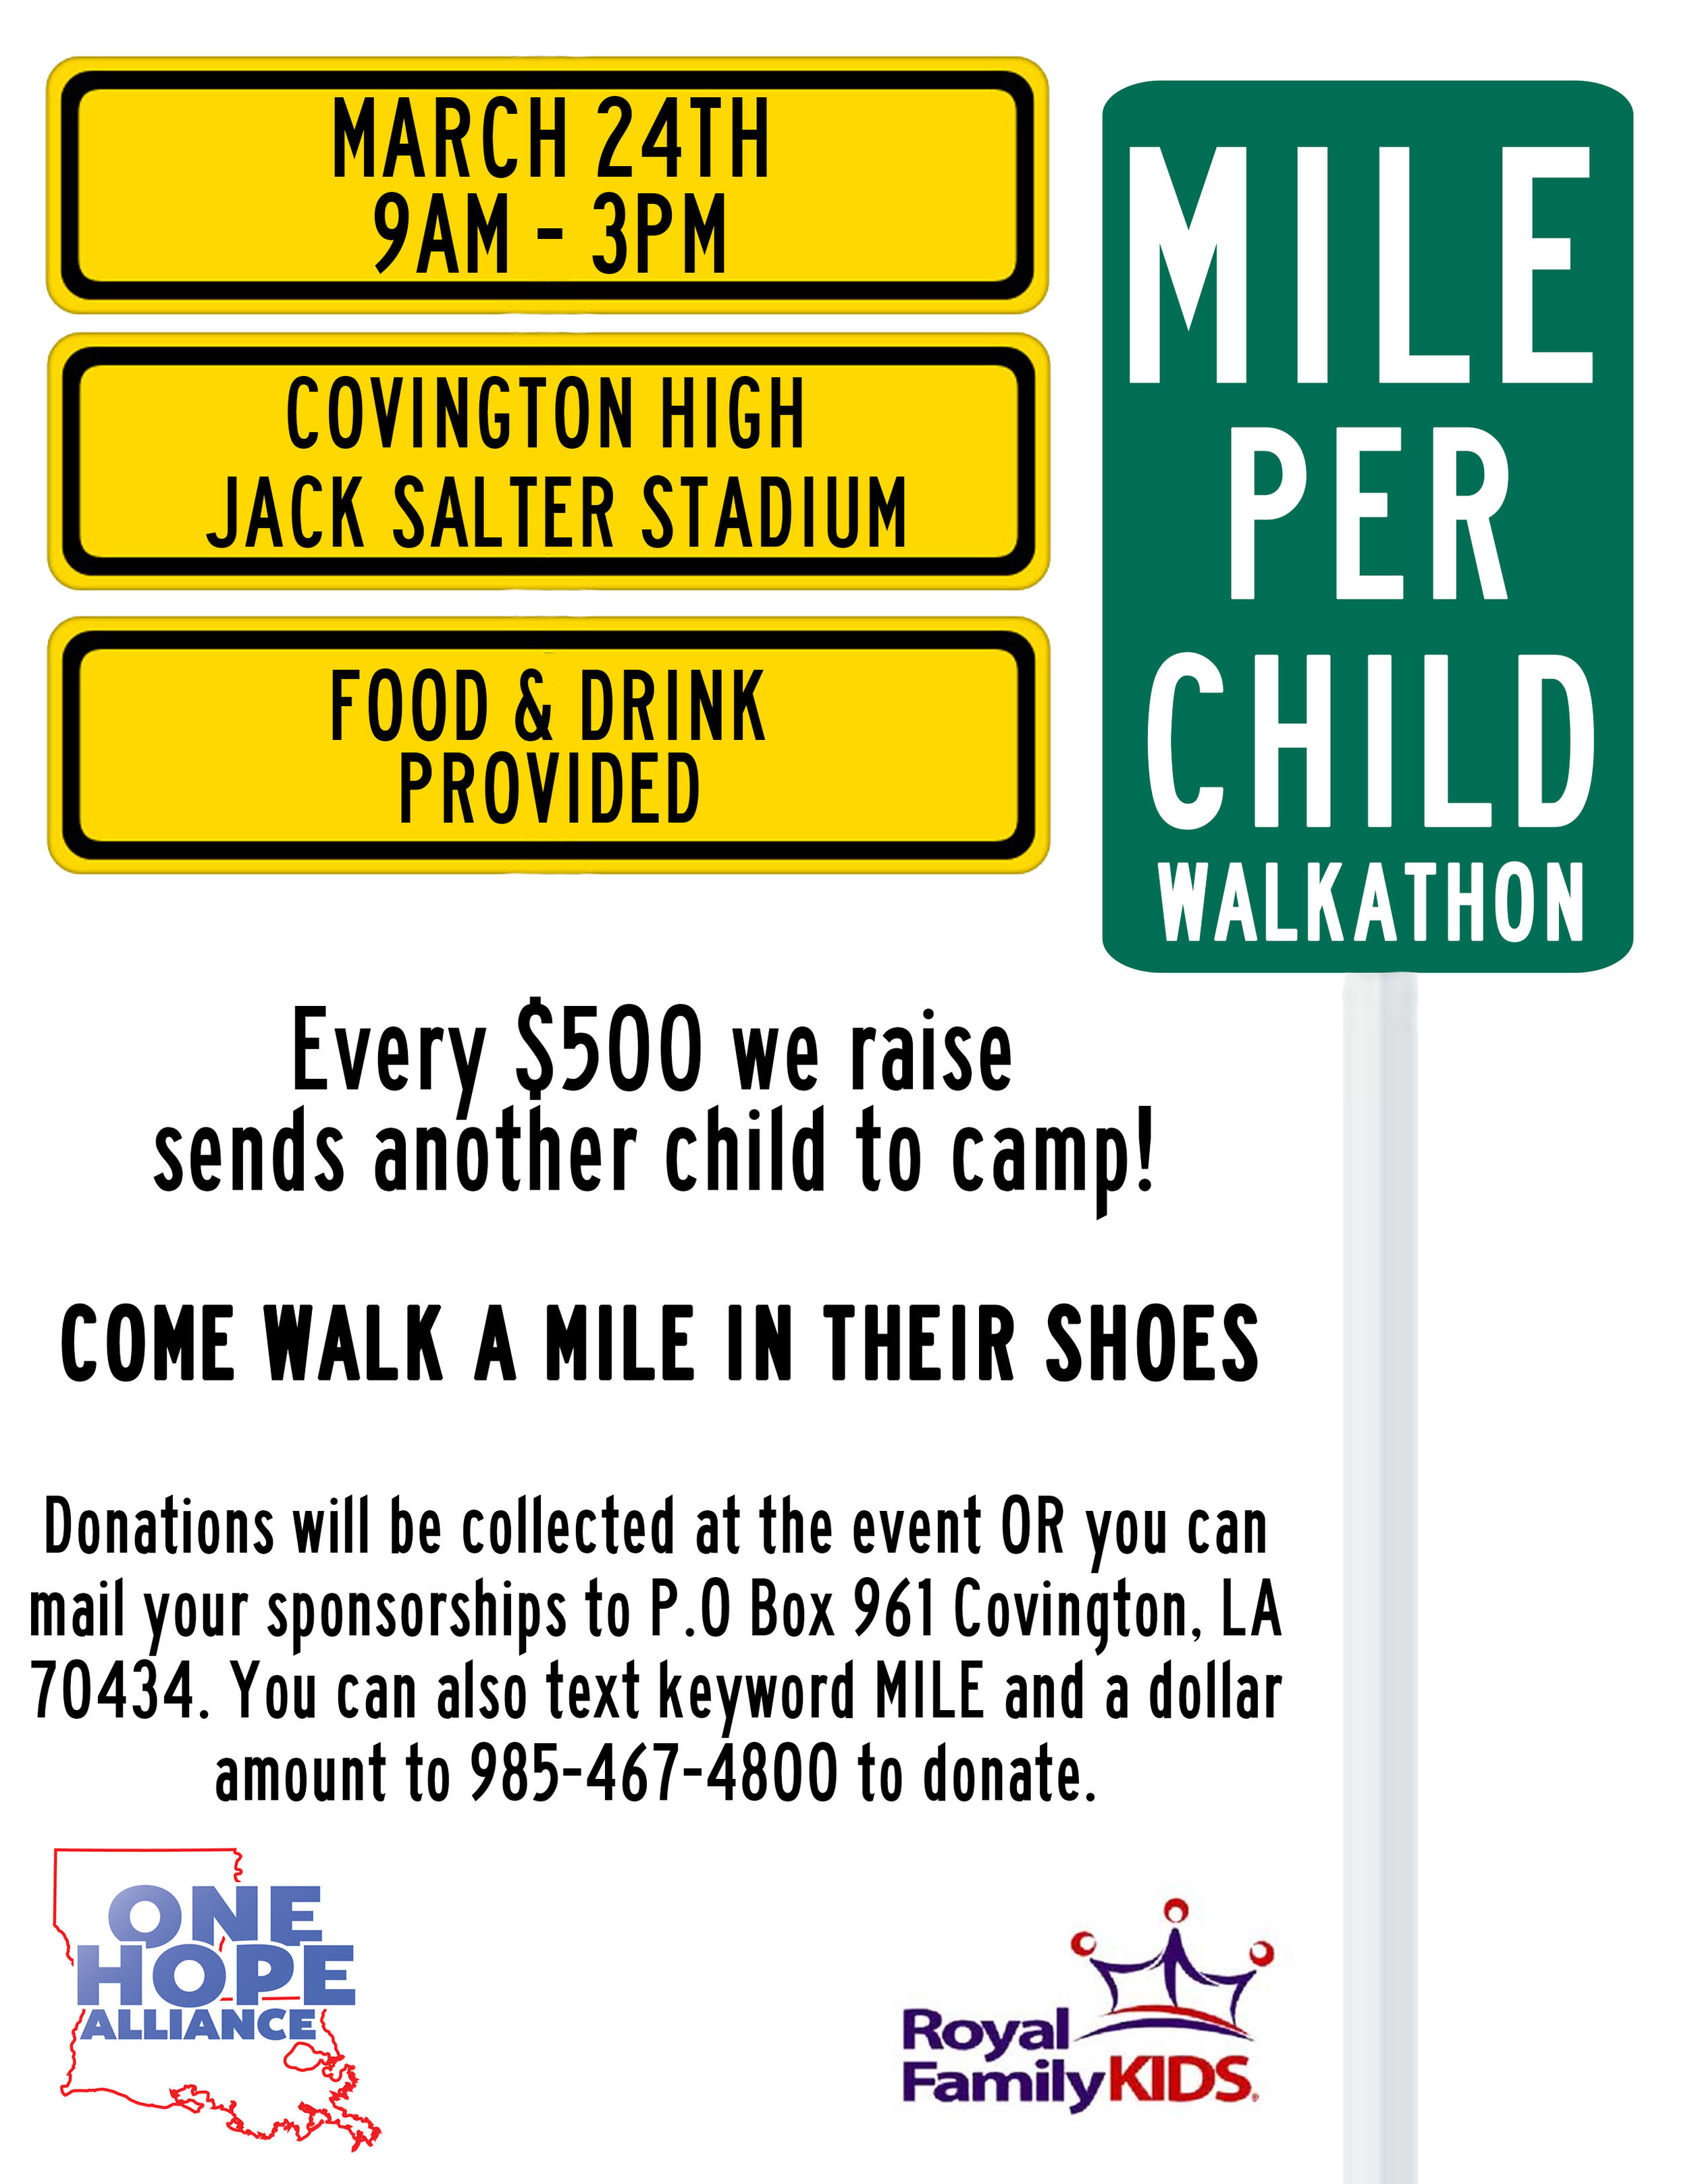 Mile Per Child Event Flyer 2018.jpg